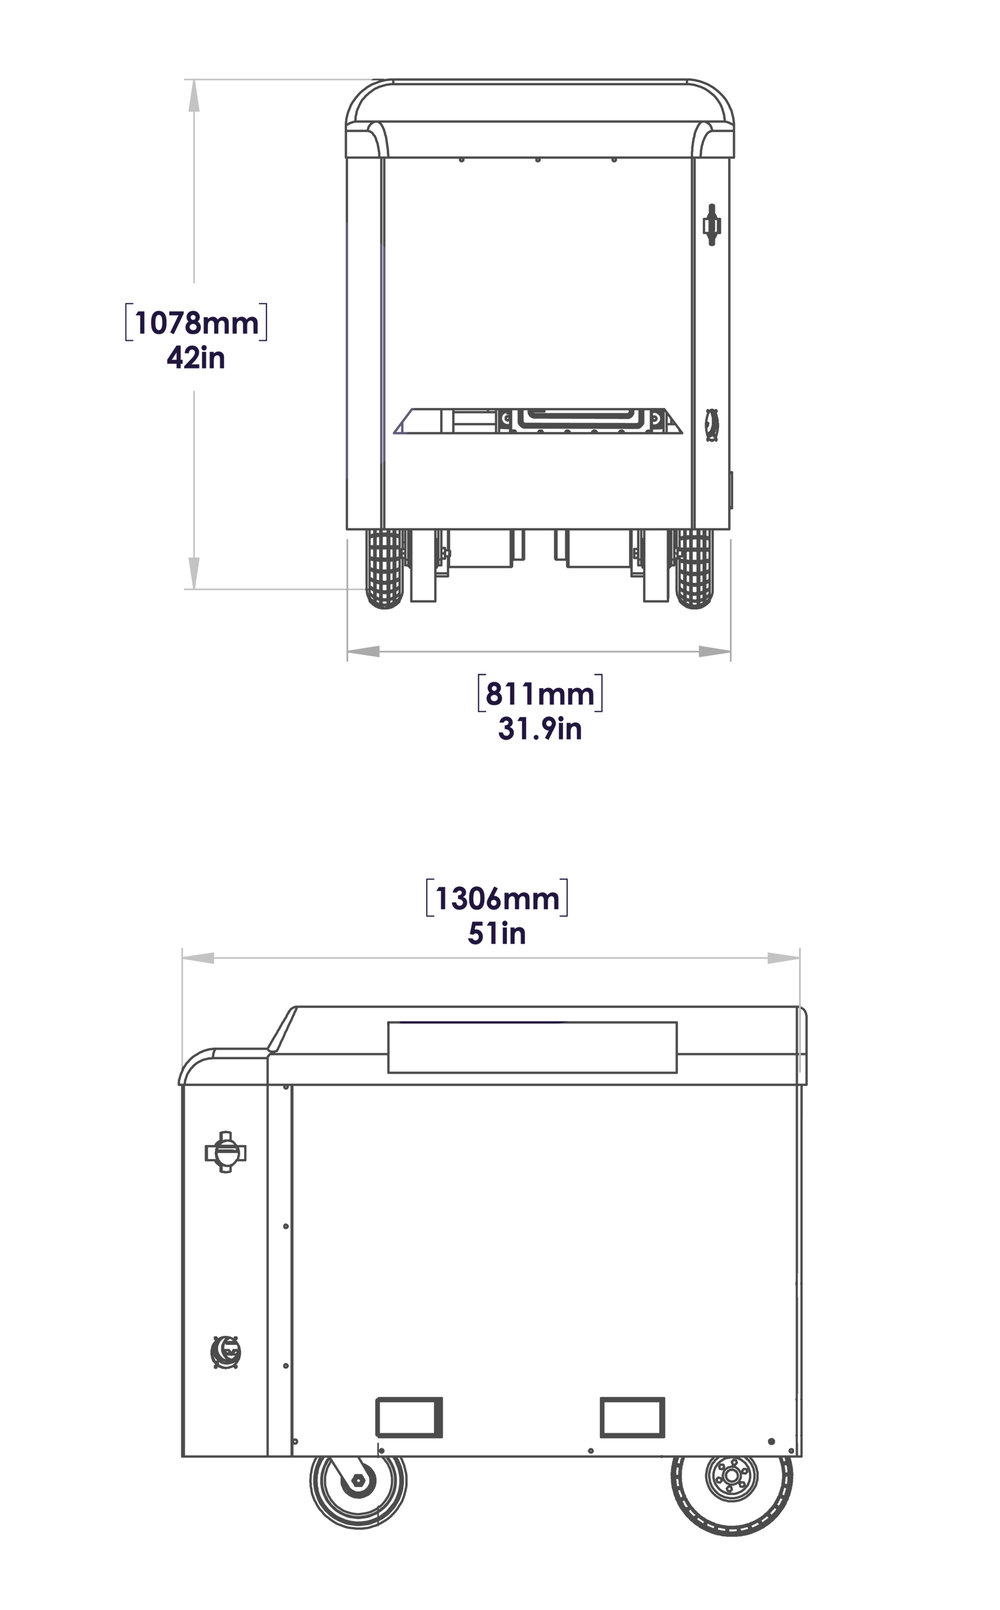 Mobi Gen Flex drawing with measurements